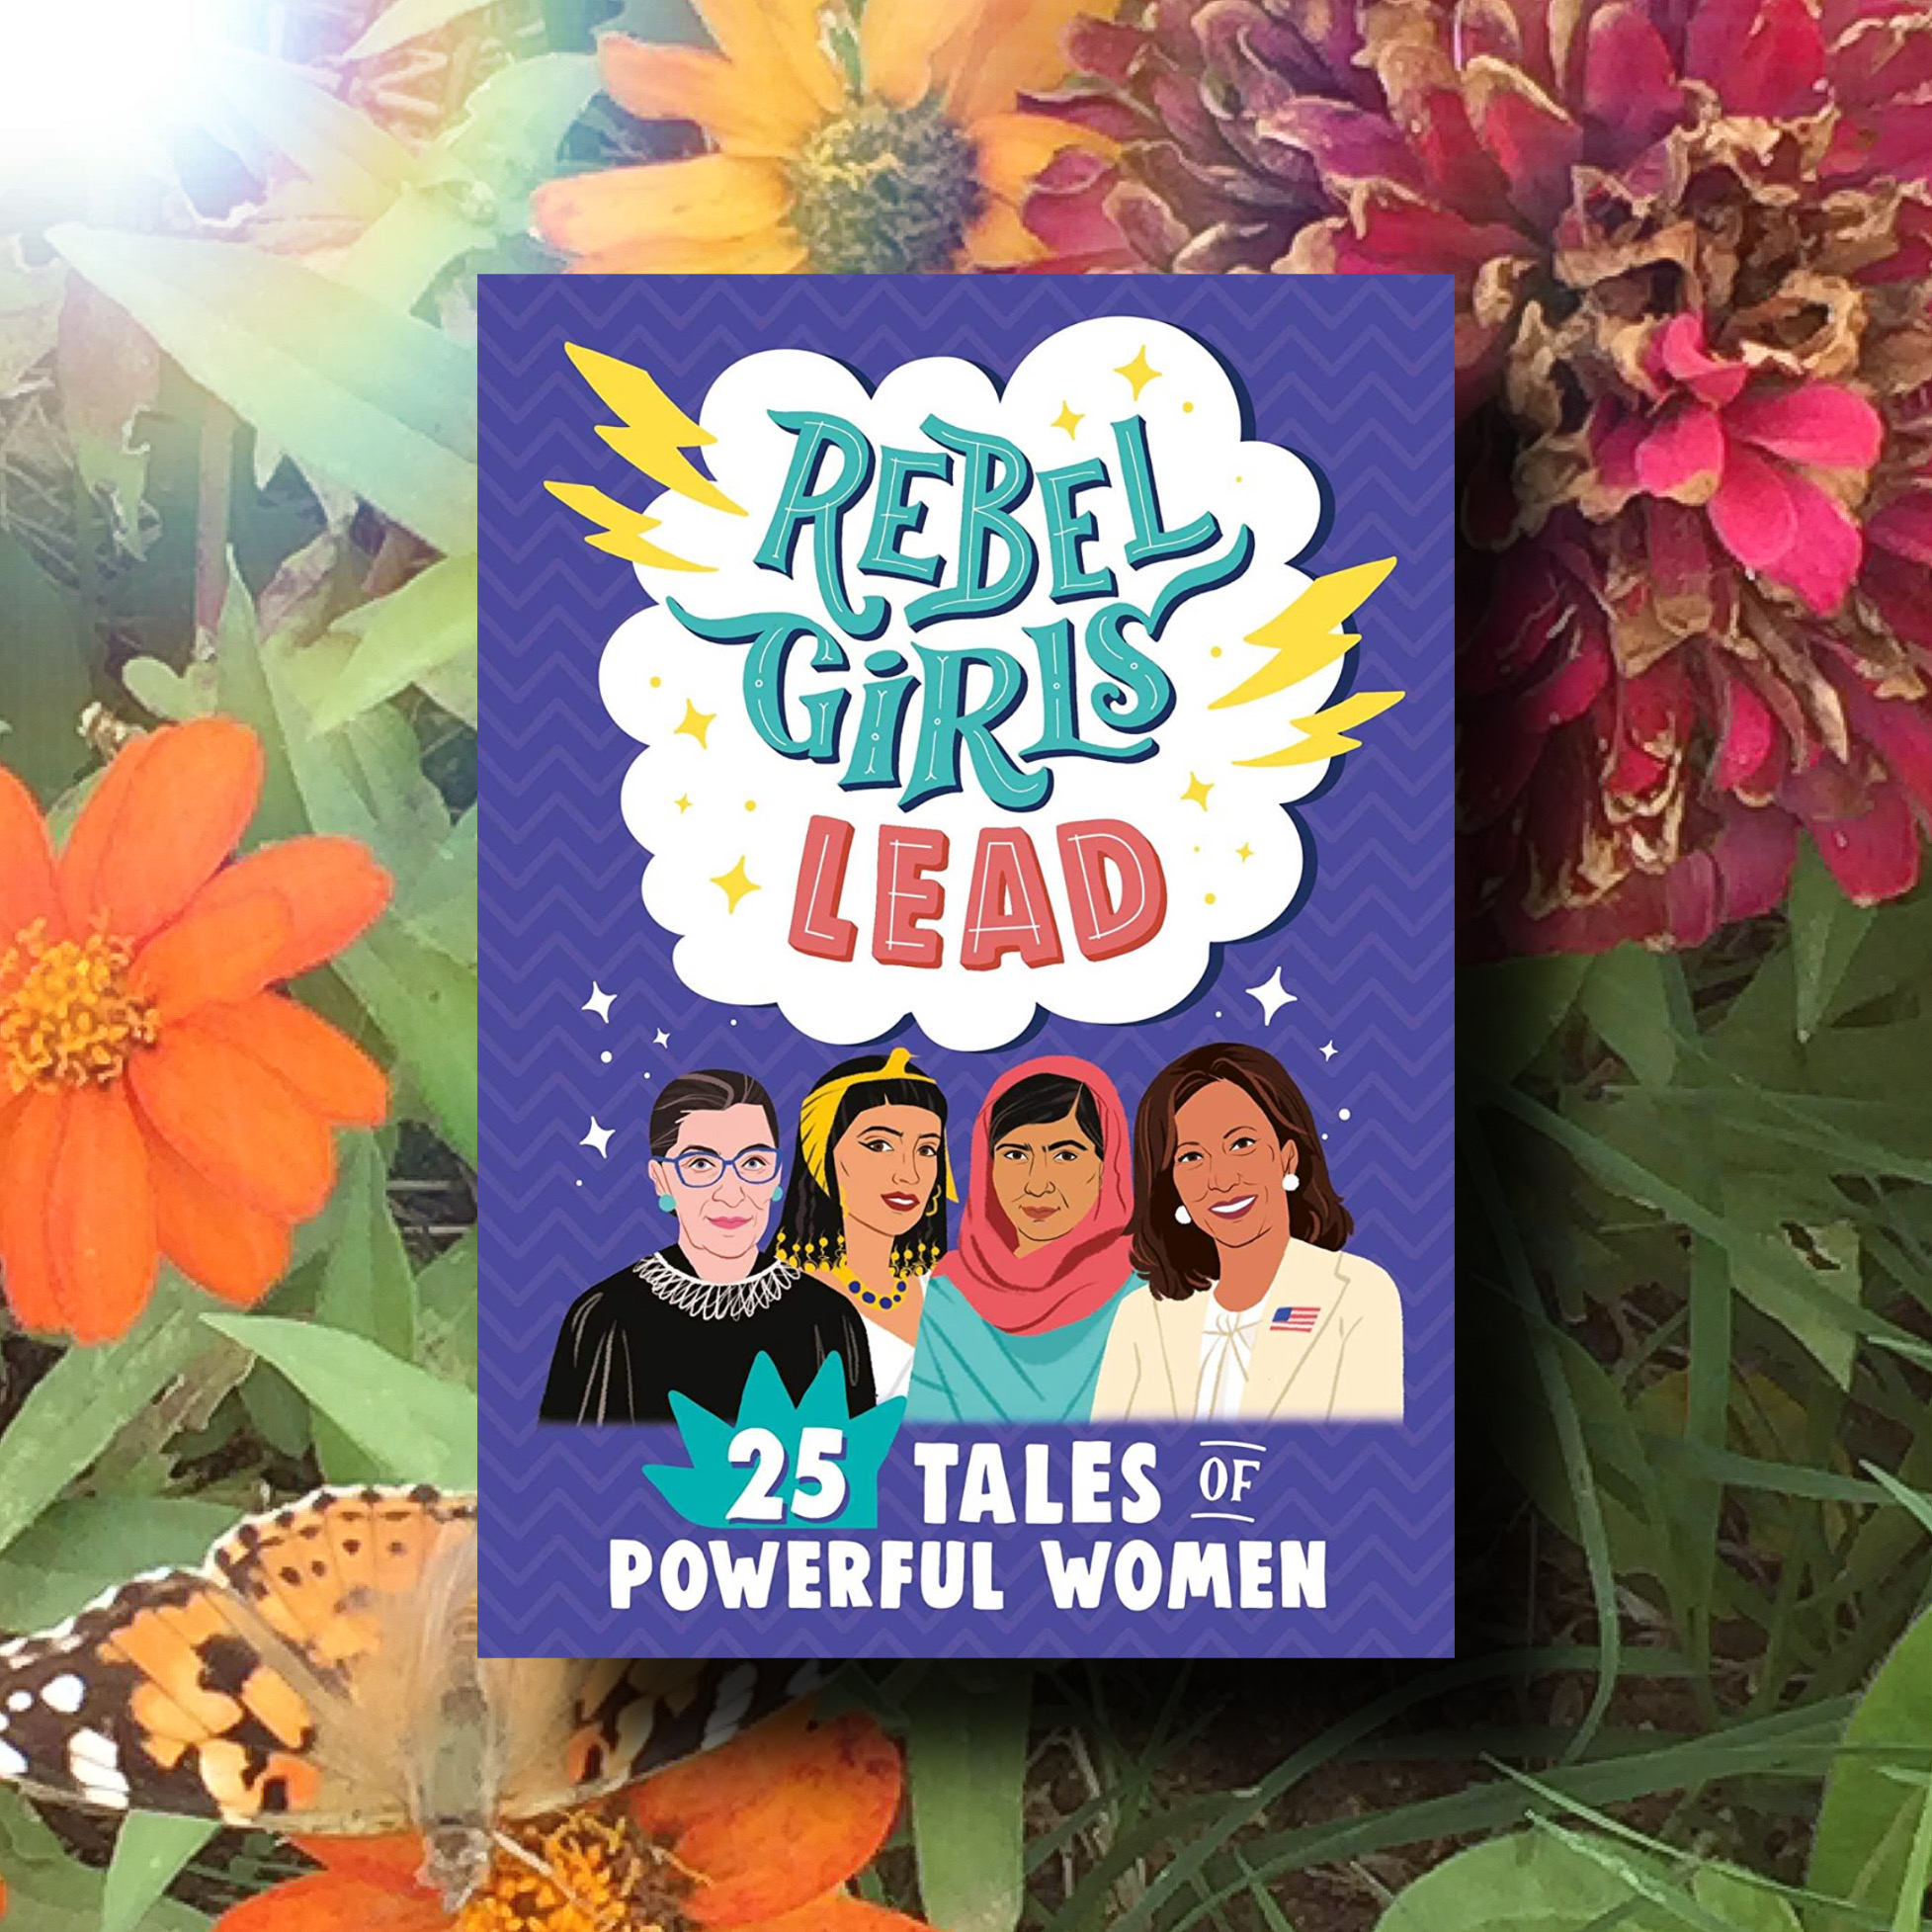 Image of flowers and a butterfly with the book Rebel Girls Lead in the front